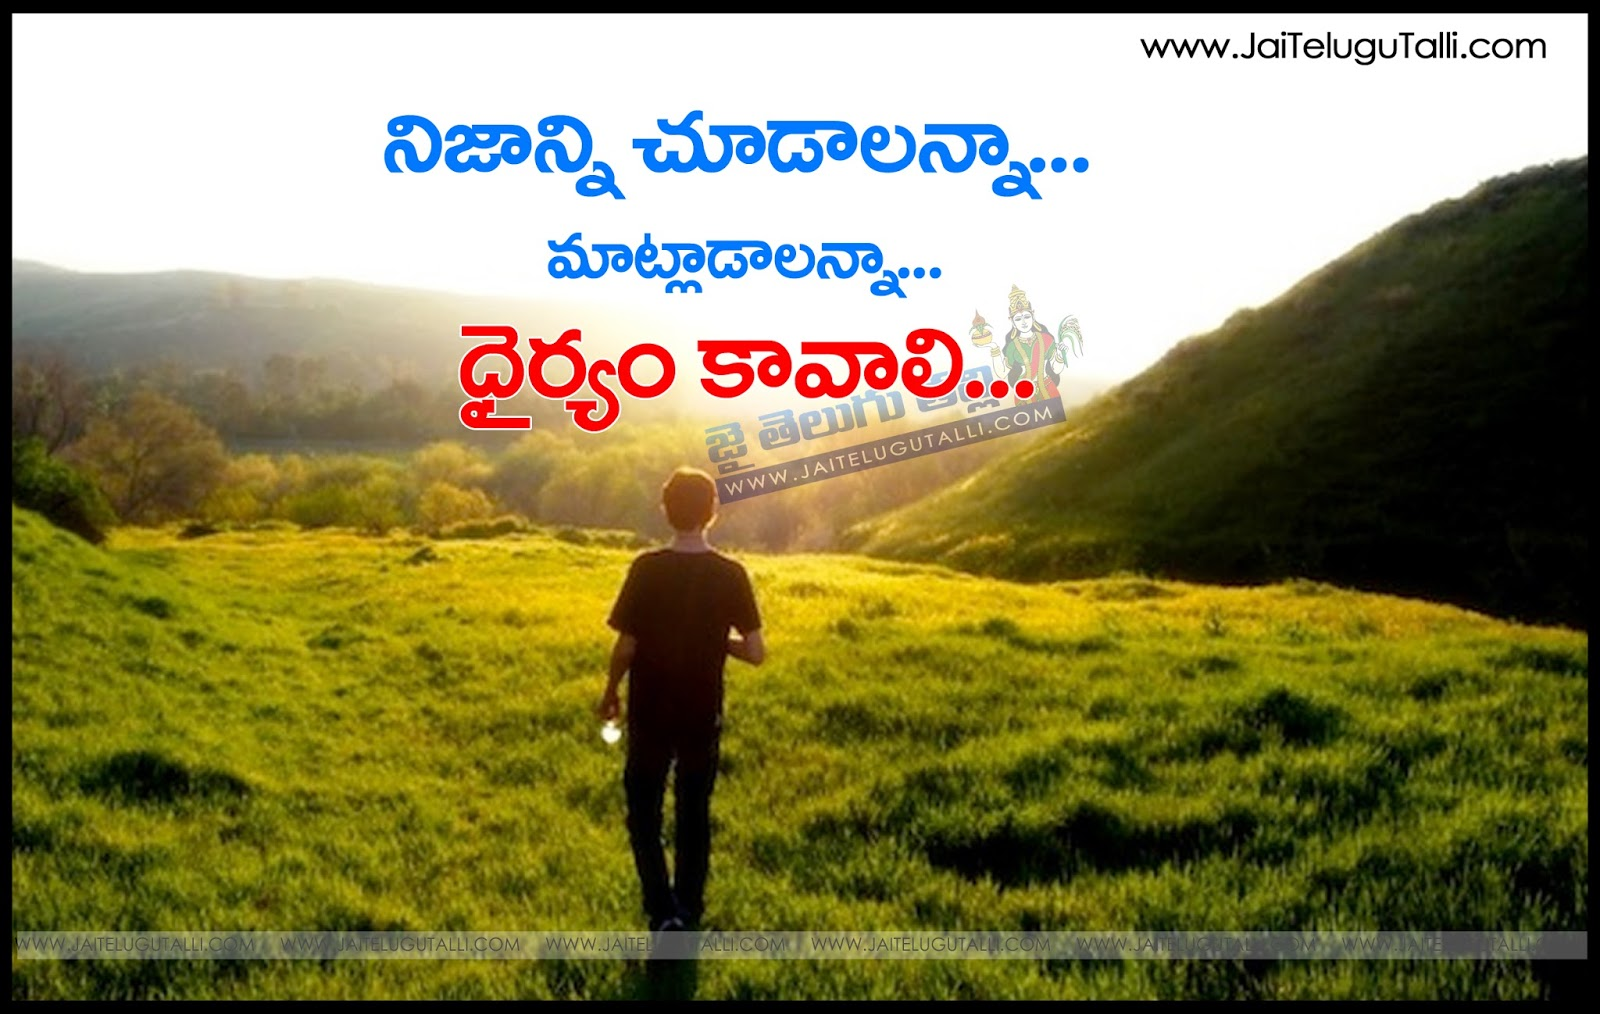 Famous Life Quotes In Telugu Hd Wallpapers Best Inspiration Thoughts